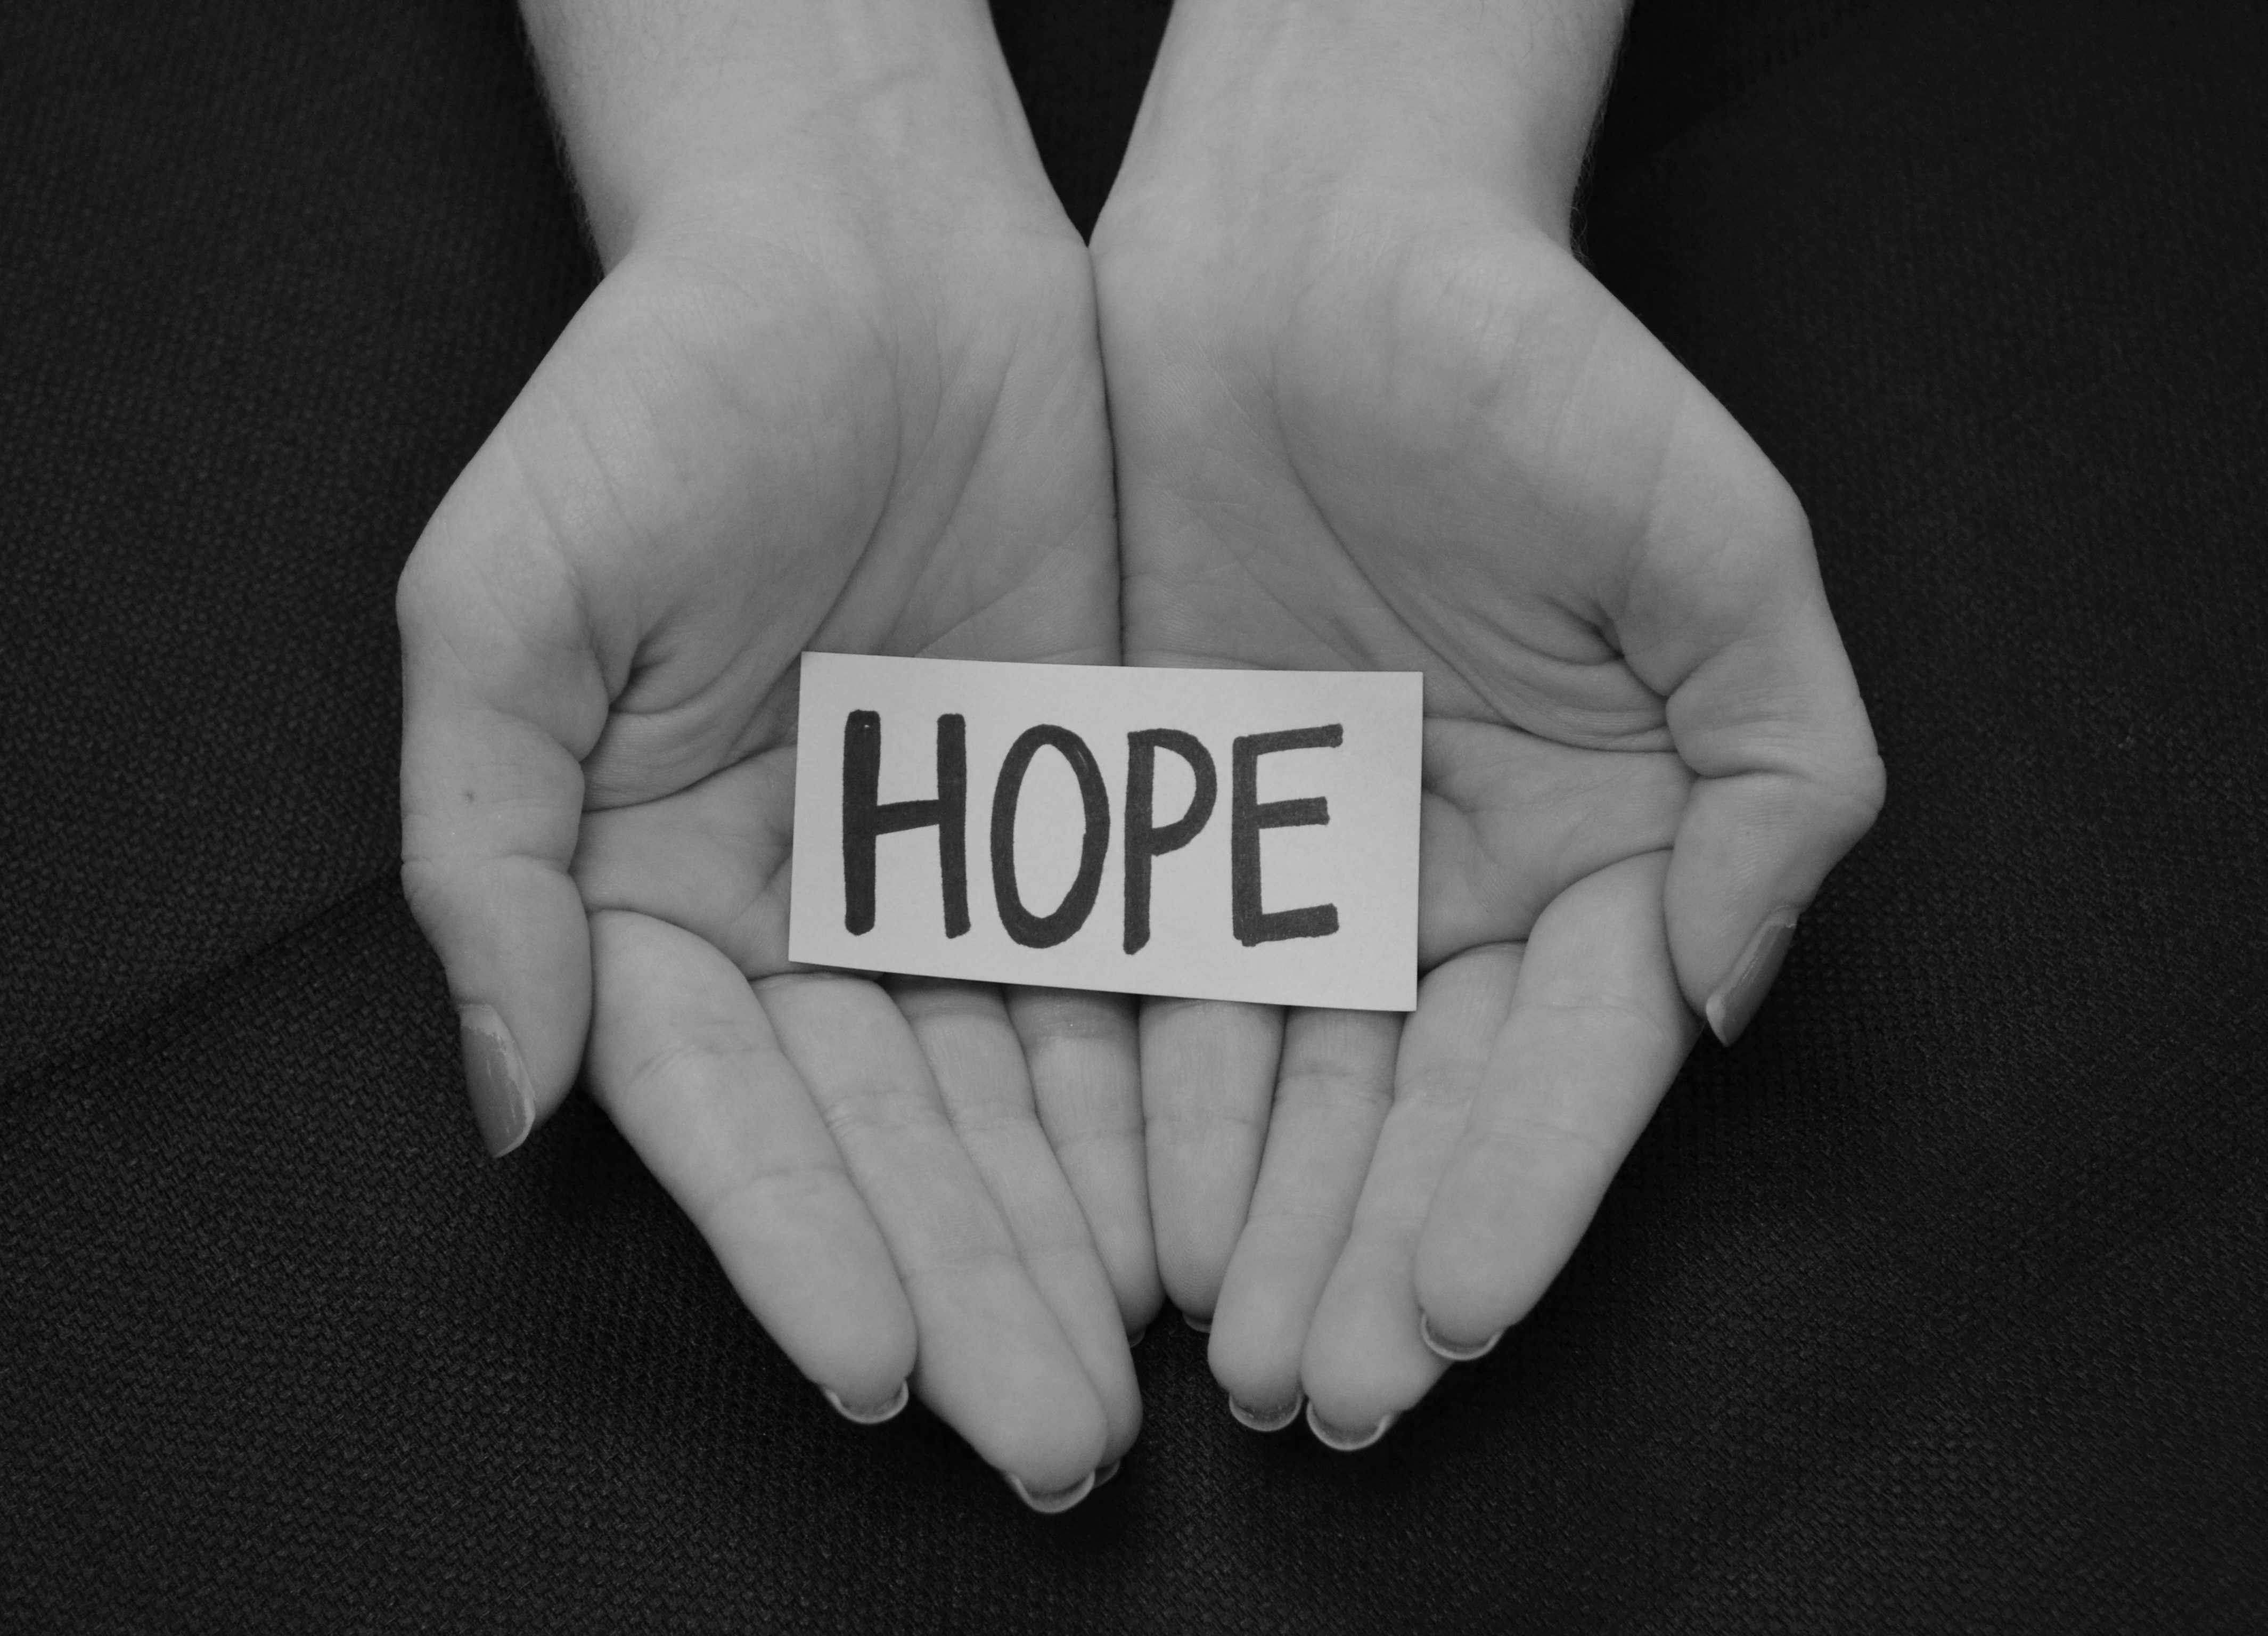 Hope – Let us reinstate that feeling